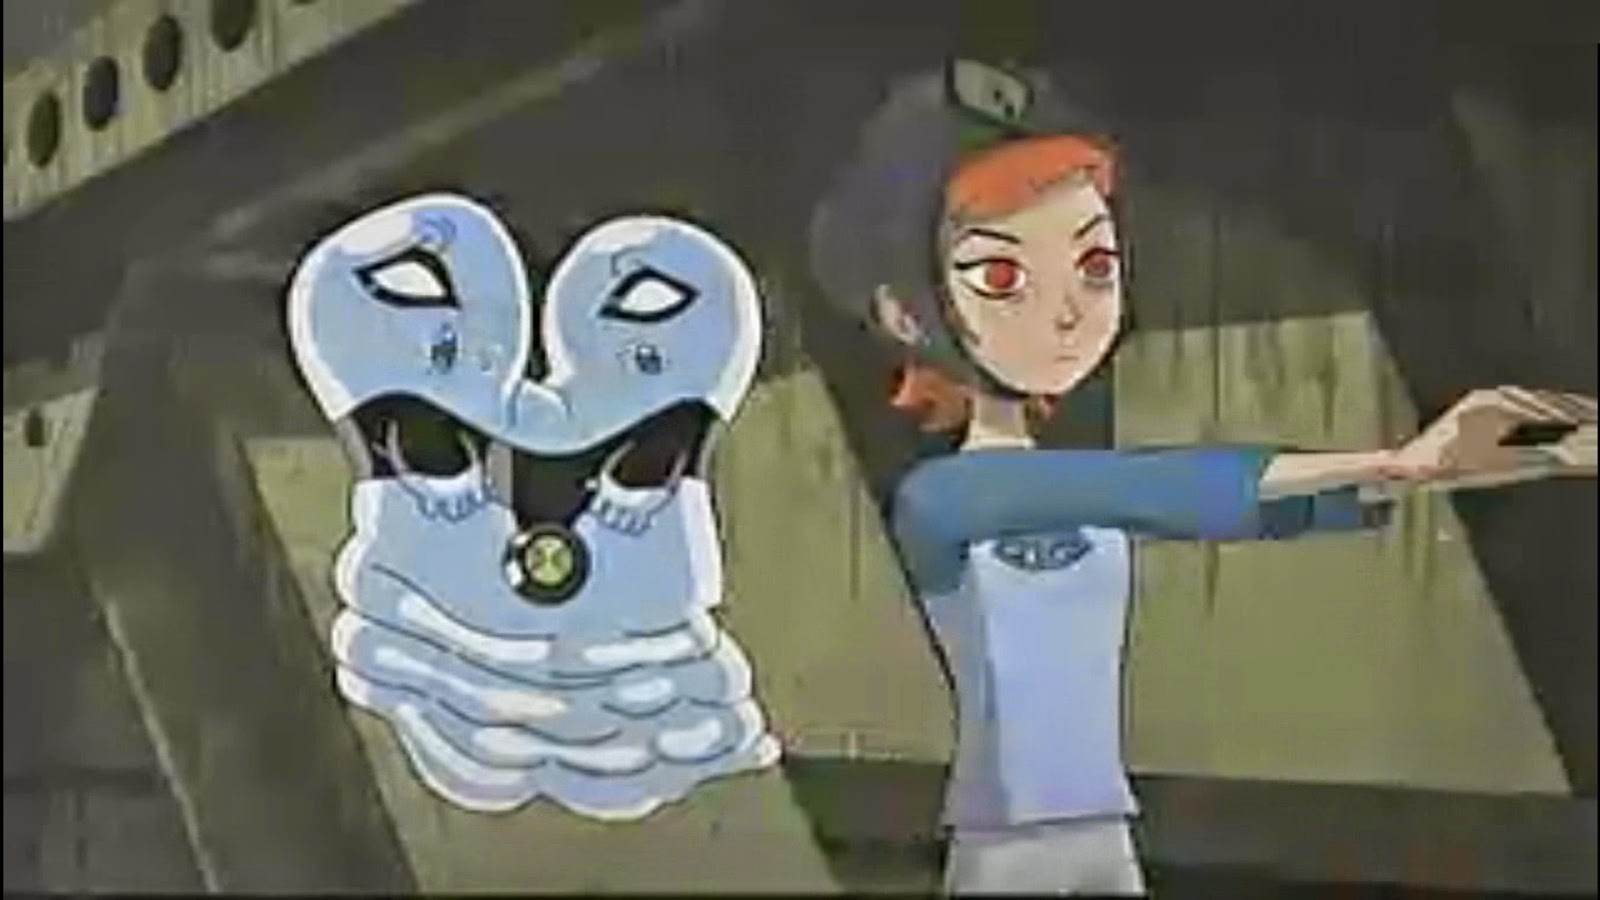 Ben 10 special in latin america comes with never-before seen aliens!!! Ben%2B10%2BAcesso%2BTotal%2B(1)